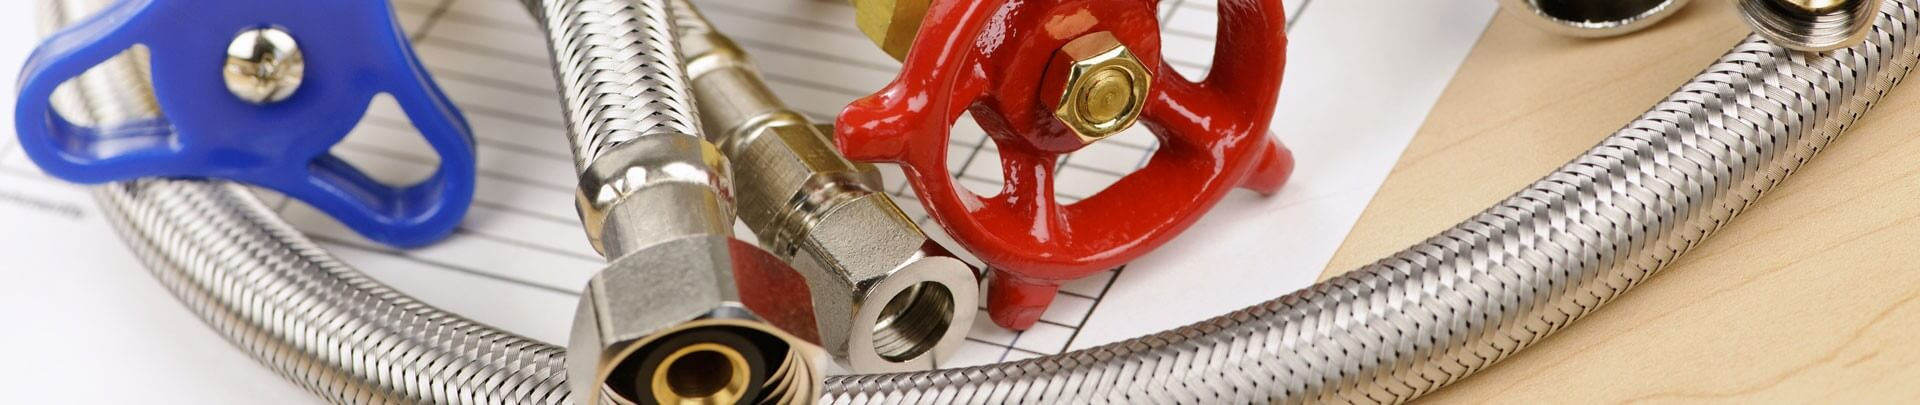 Experts Plumbing Services, LLC - Backflow Prevention